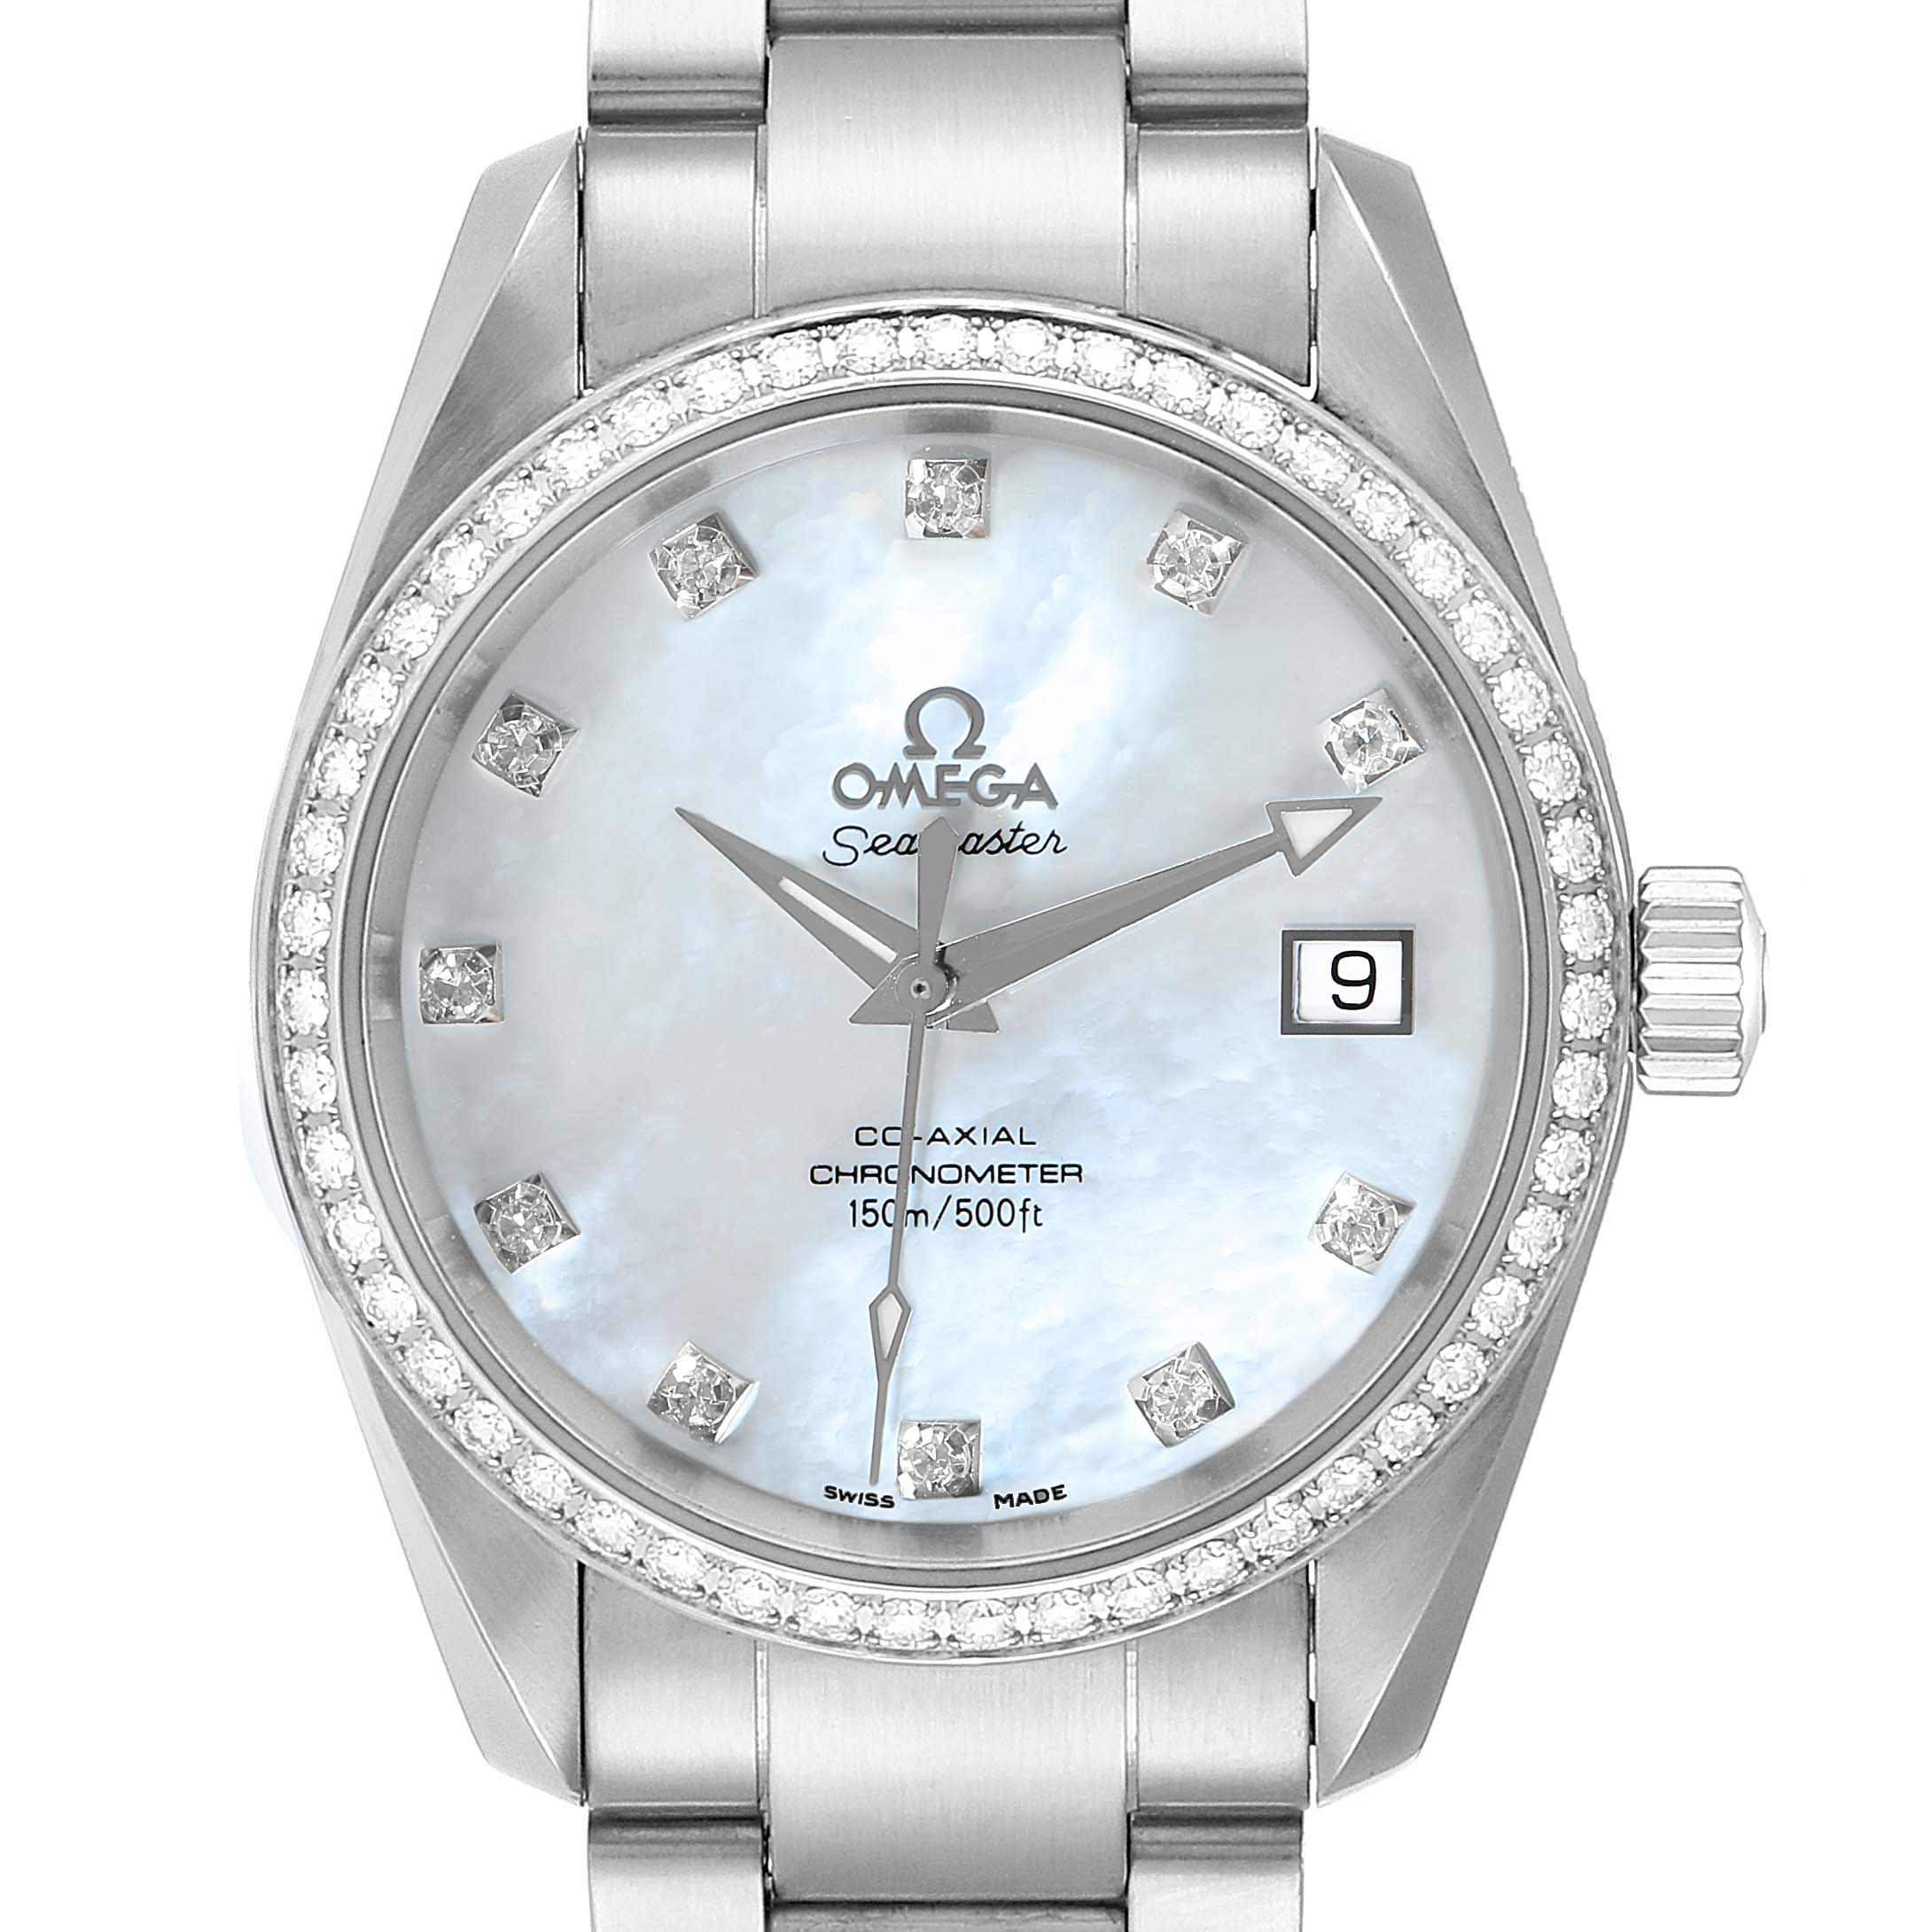 Omega Aqua Terra 36 Steel MOP Diamond Ladies Watch 2509.75.00 Box Card